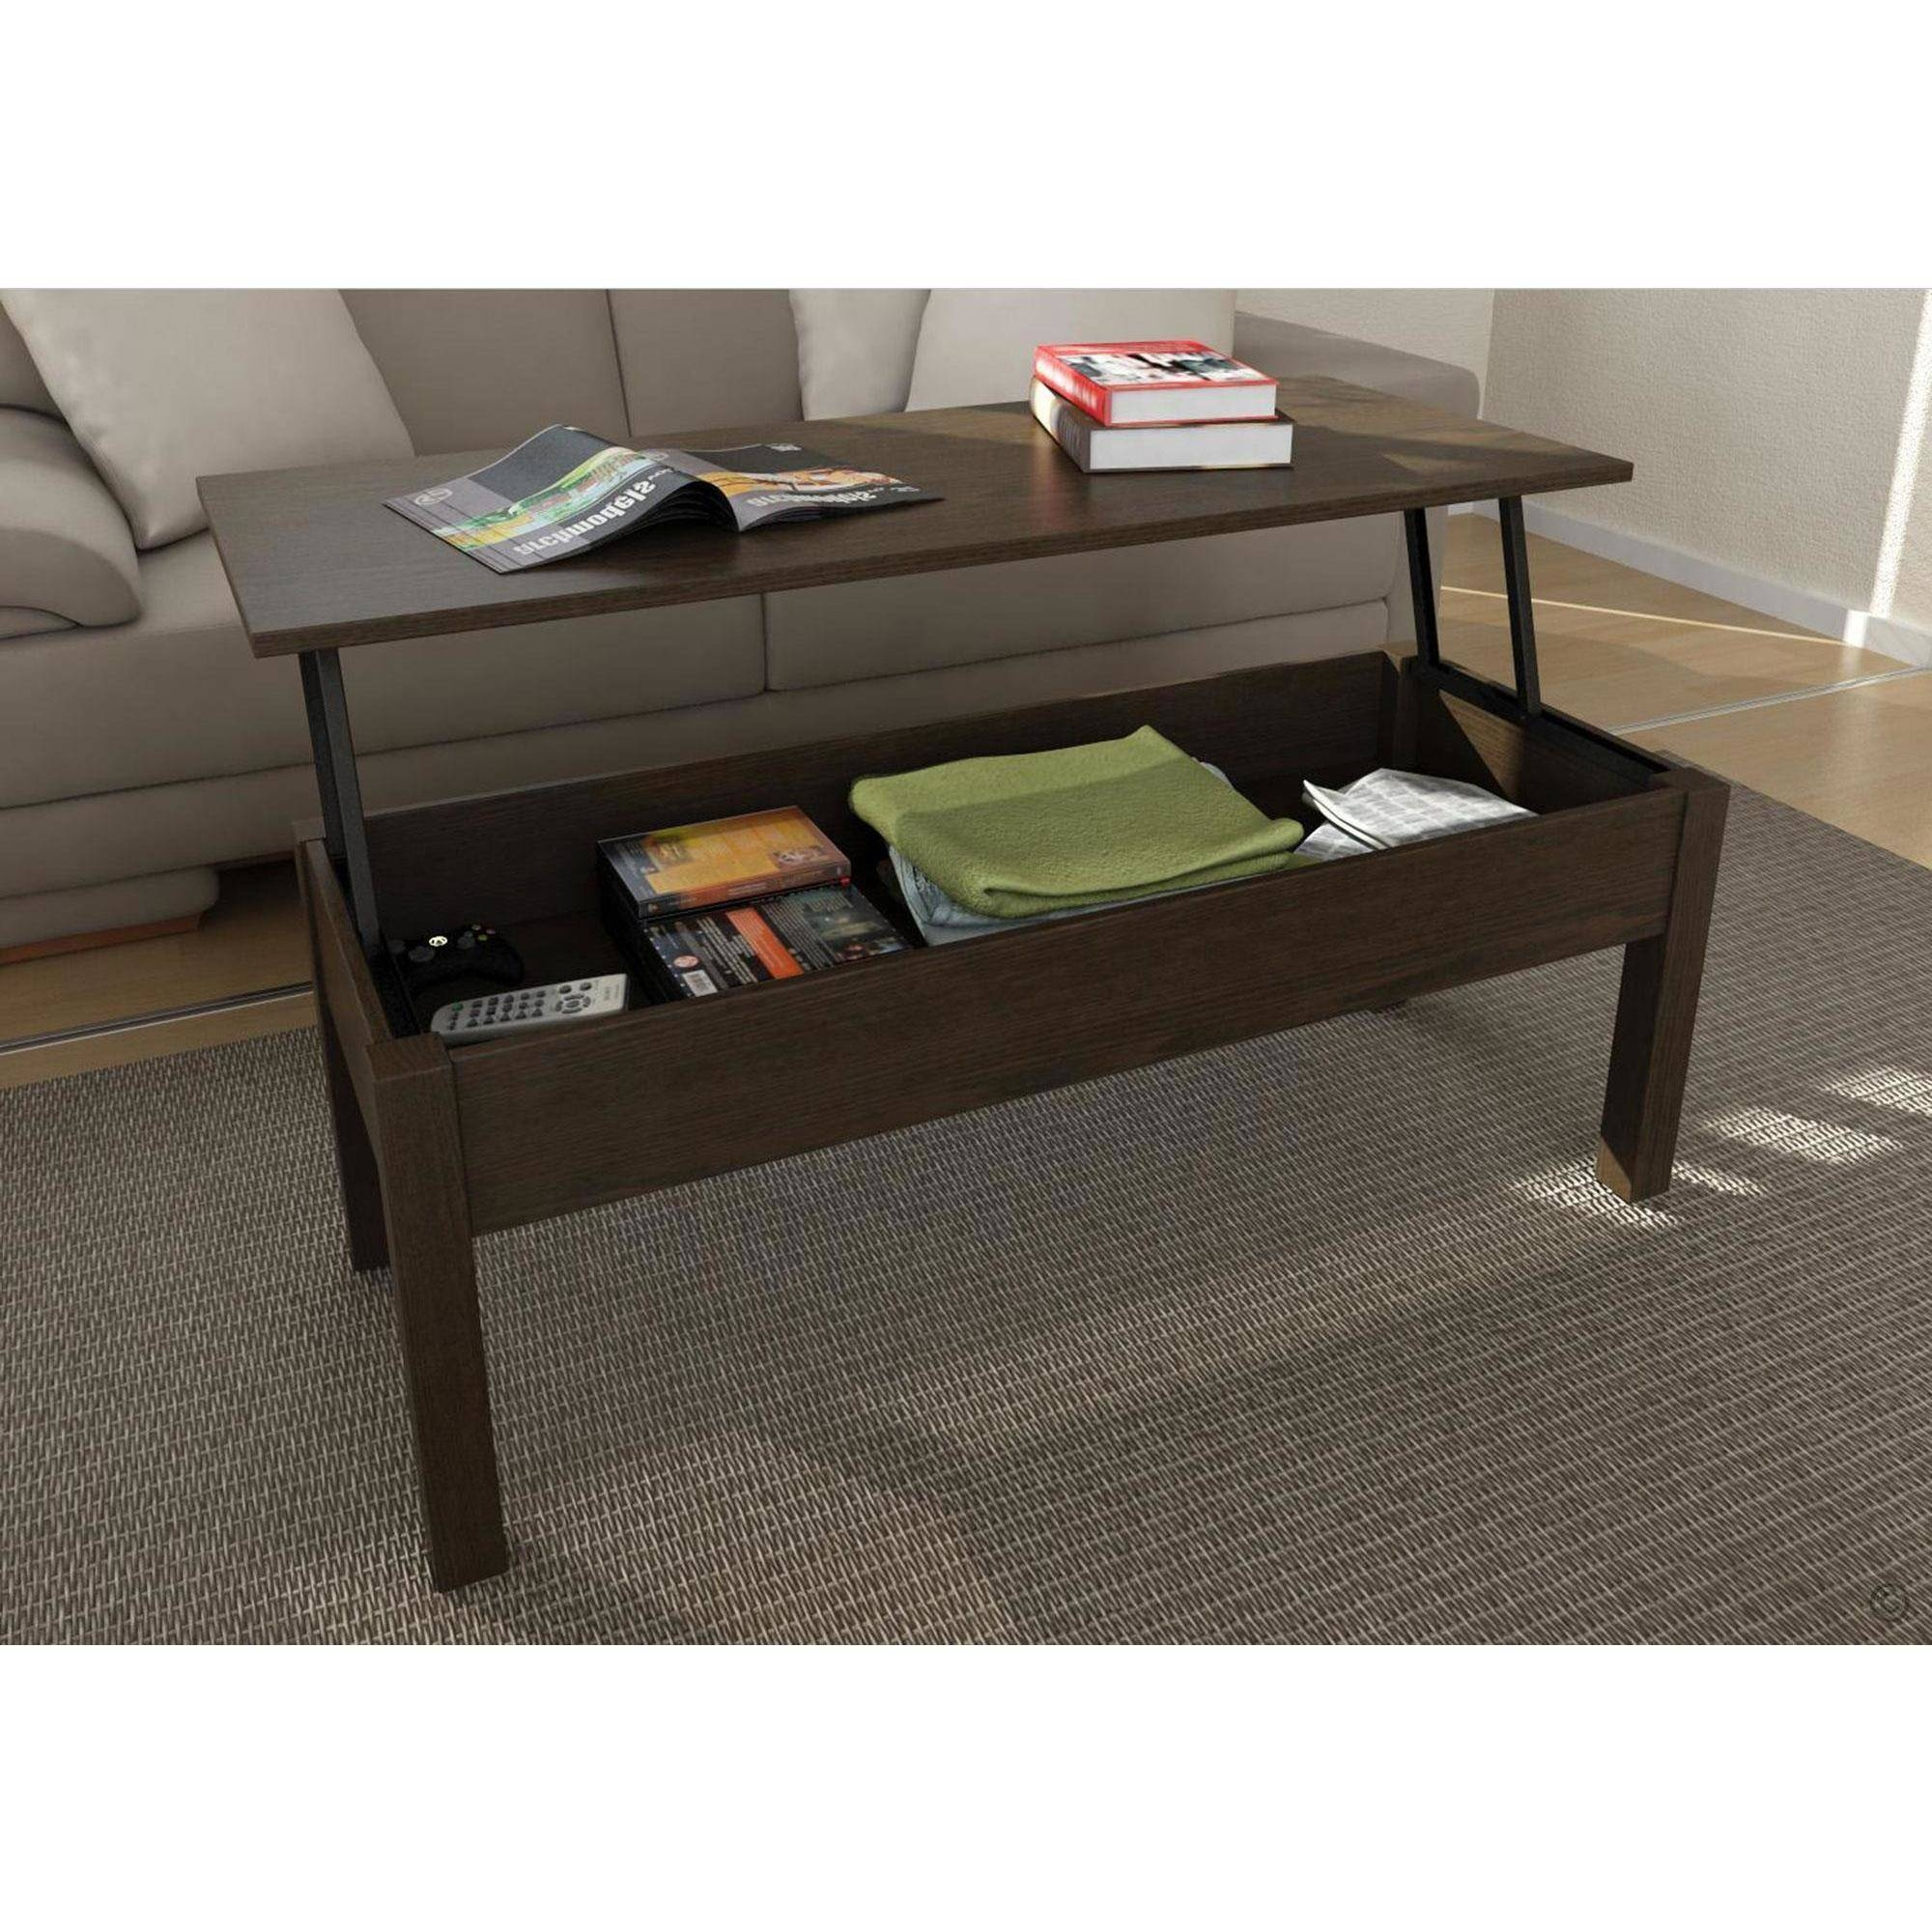 Mainstays Lift Top Coffee Table, Multiple Colors – Walmart Intended For Coffee Tables With Lift Up Top (View 21 of 30)